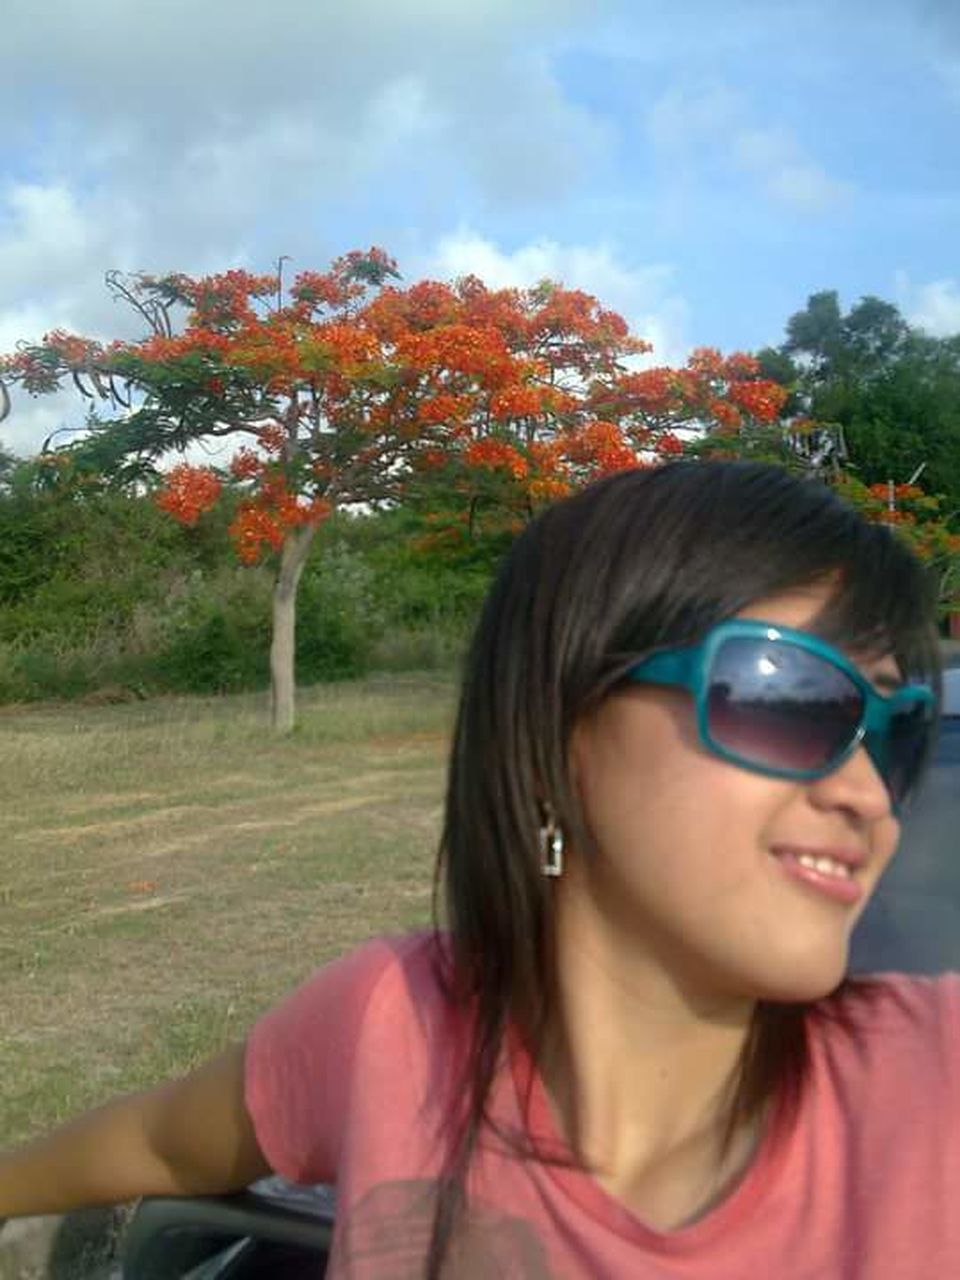 sunglasses, tree, one person, outdoors, day, leisure activity, young adult, nature, young women, sky, real people, grass, adult, people